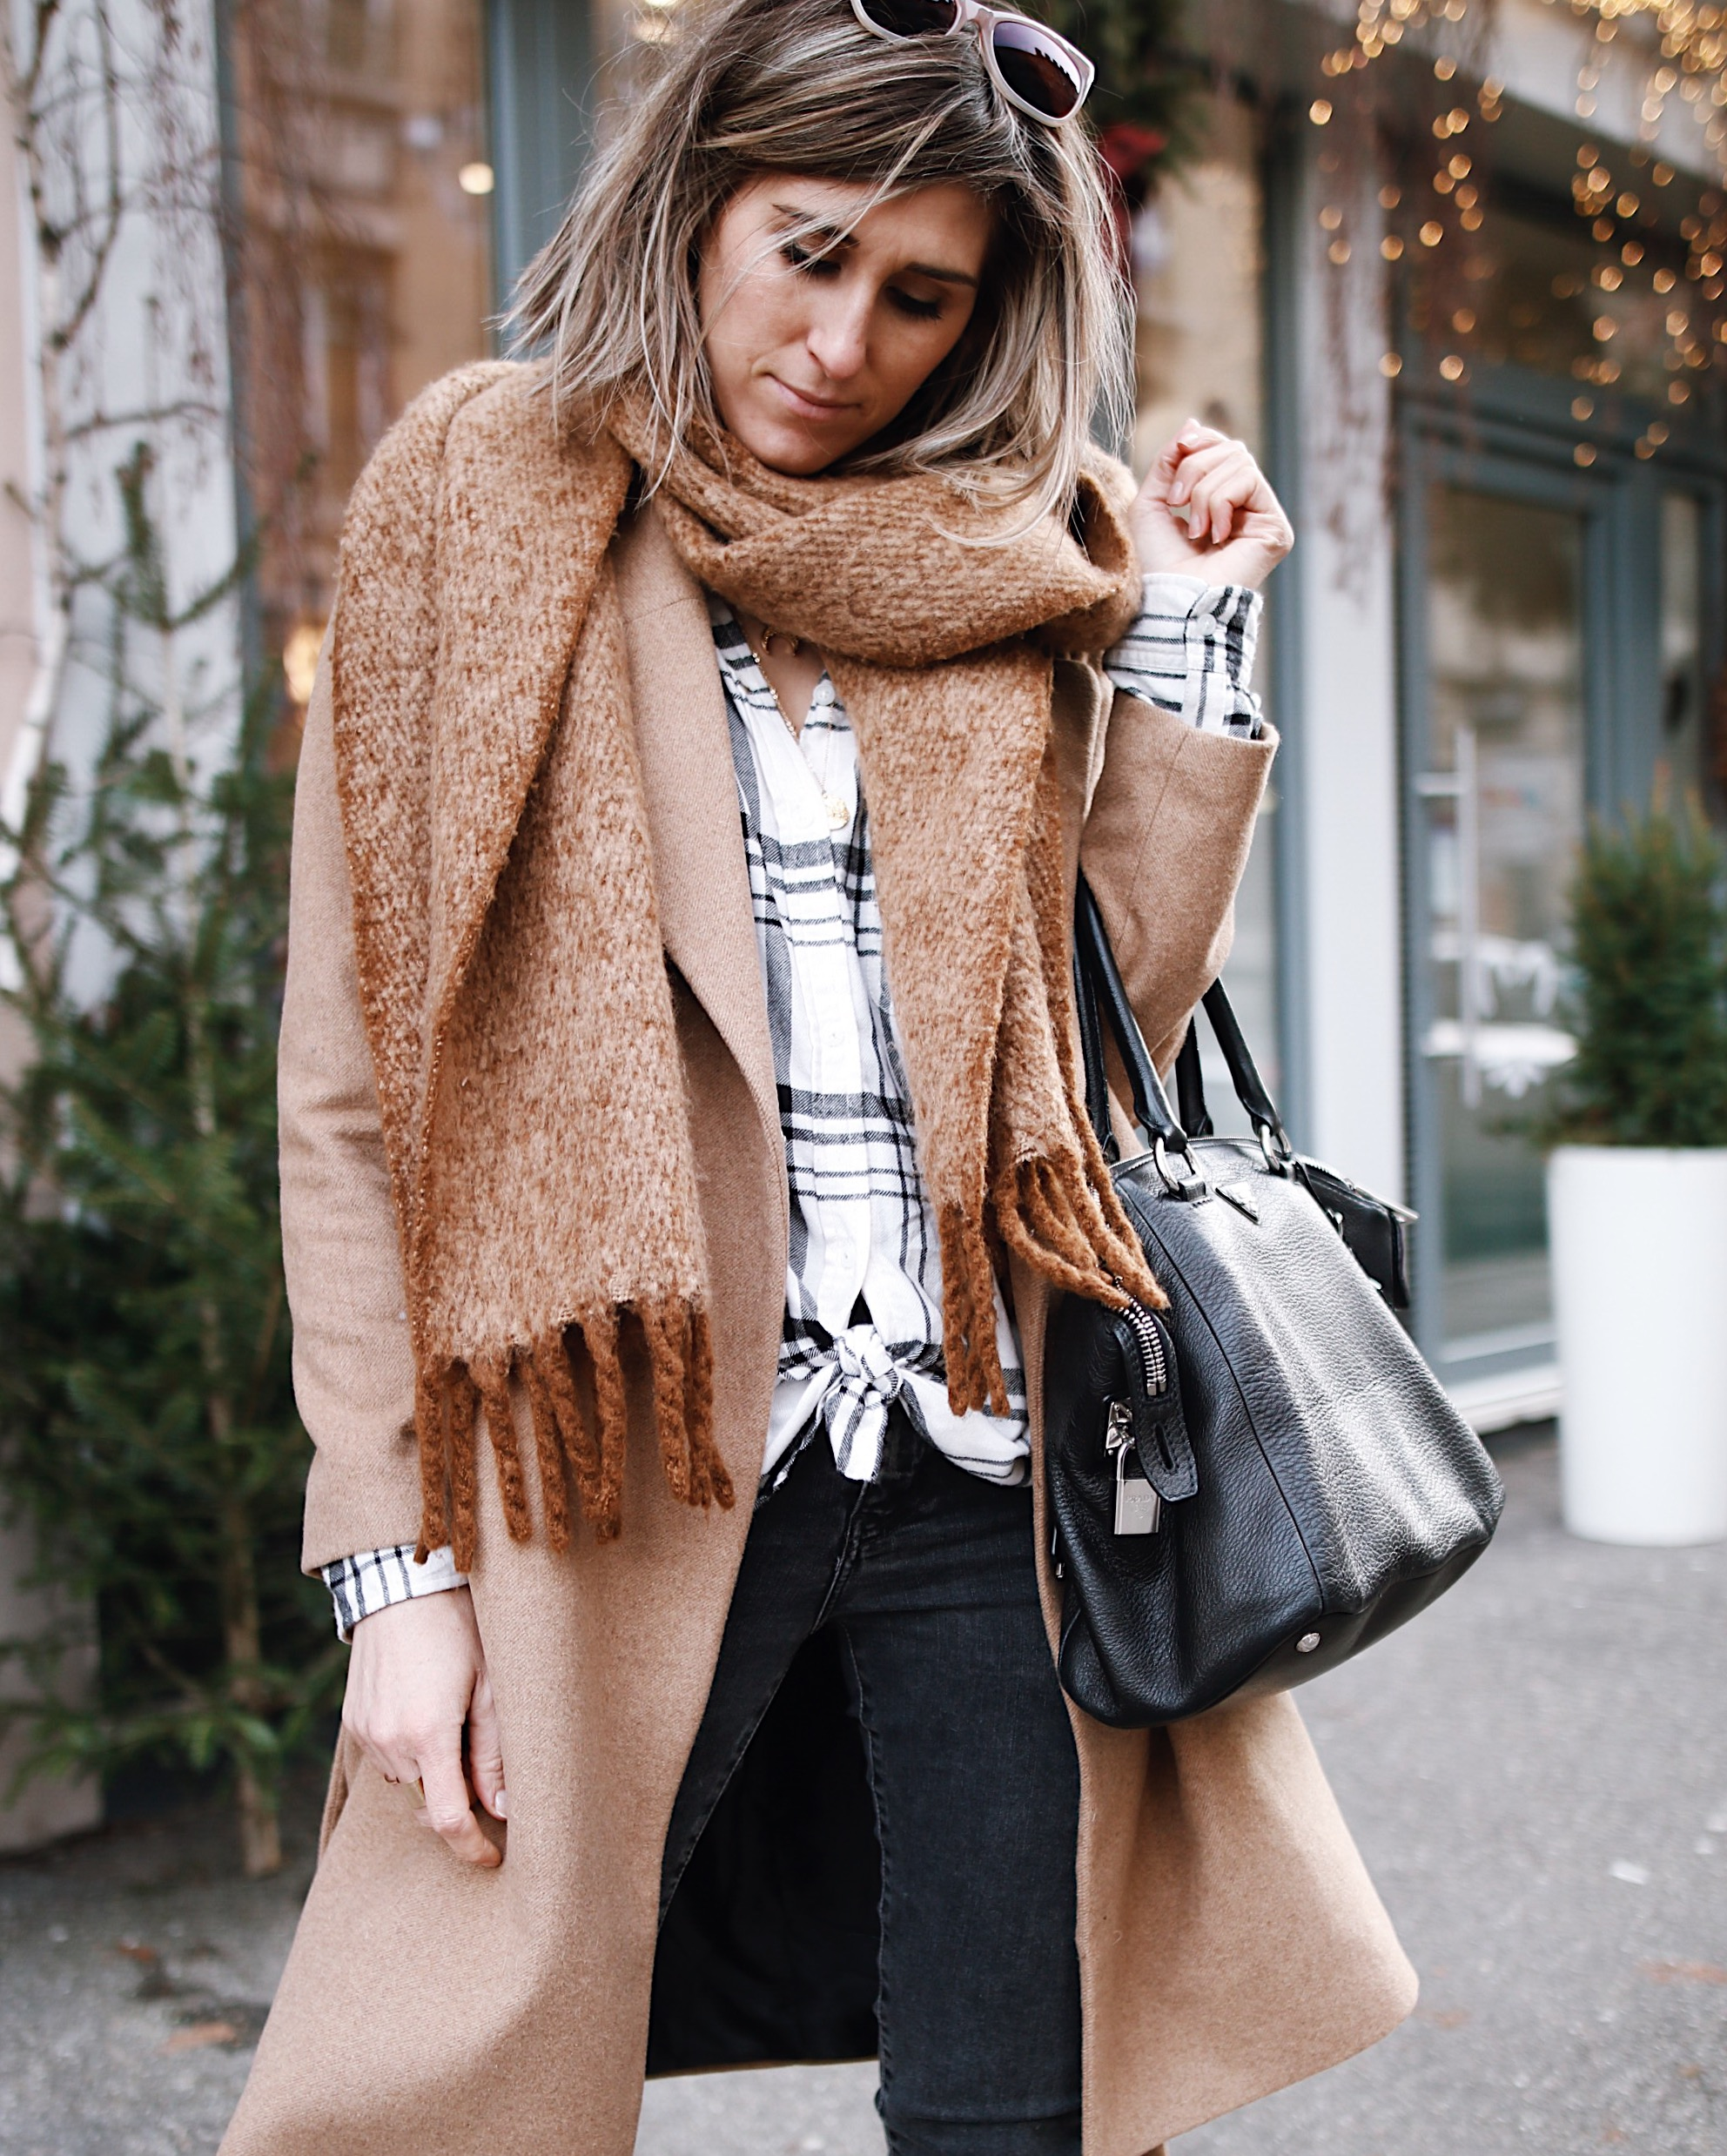 camel coat and winter style